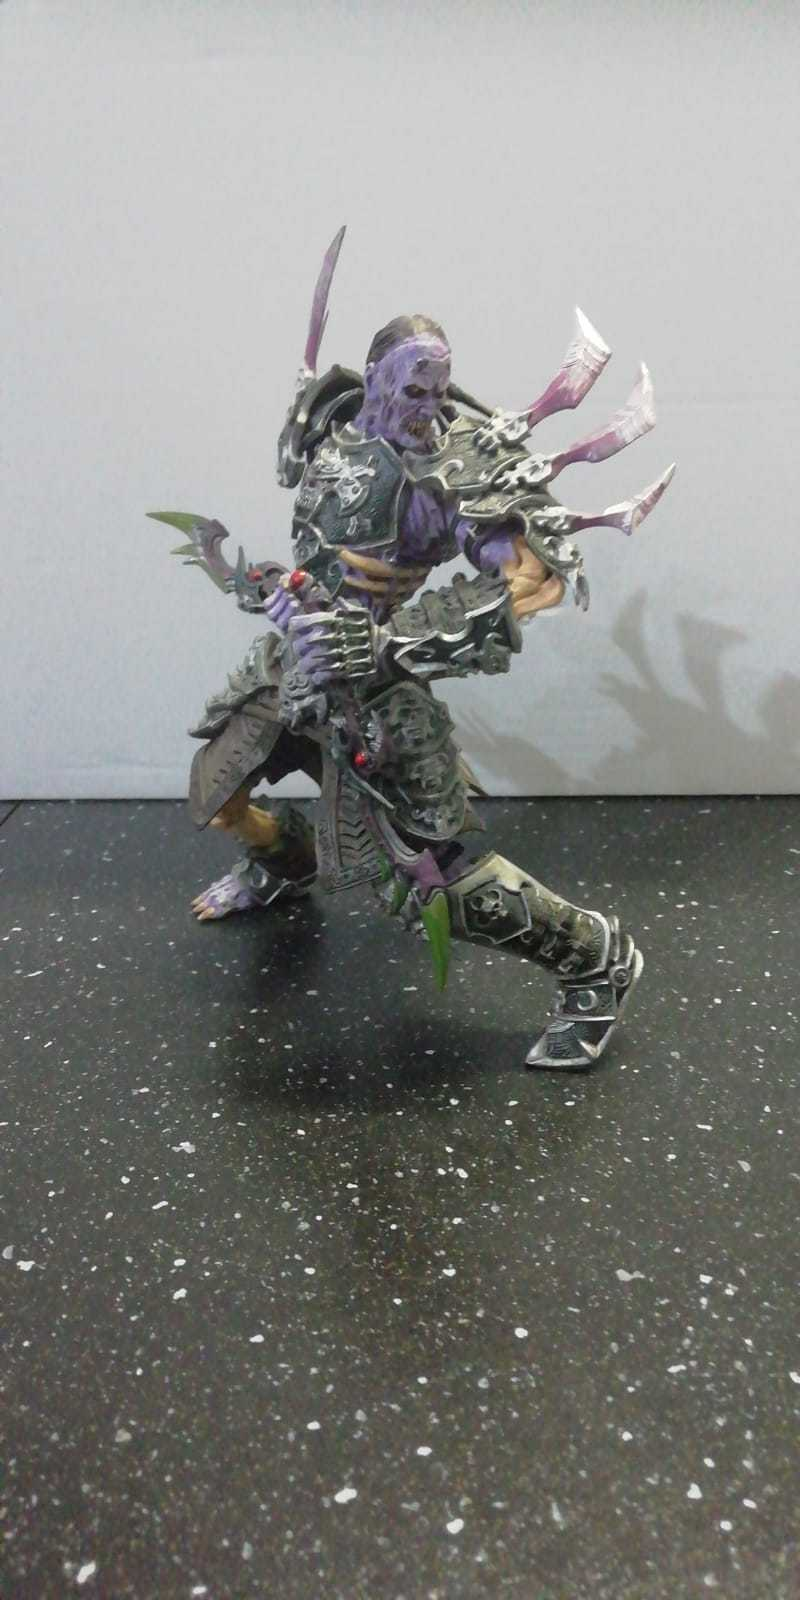 DC World Of Warcraft Series 3 - Undead Rogue Skeeve Sorrowblade Action Figure